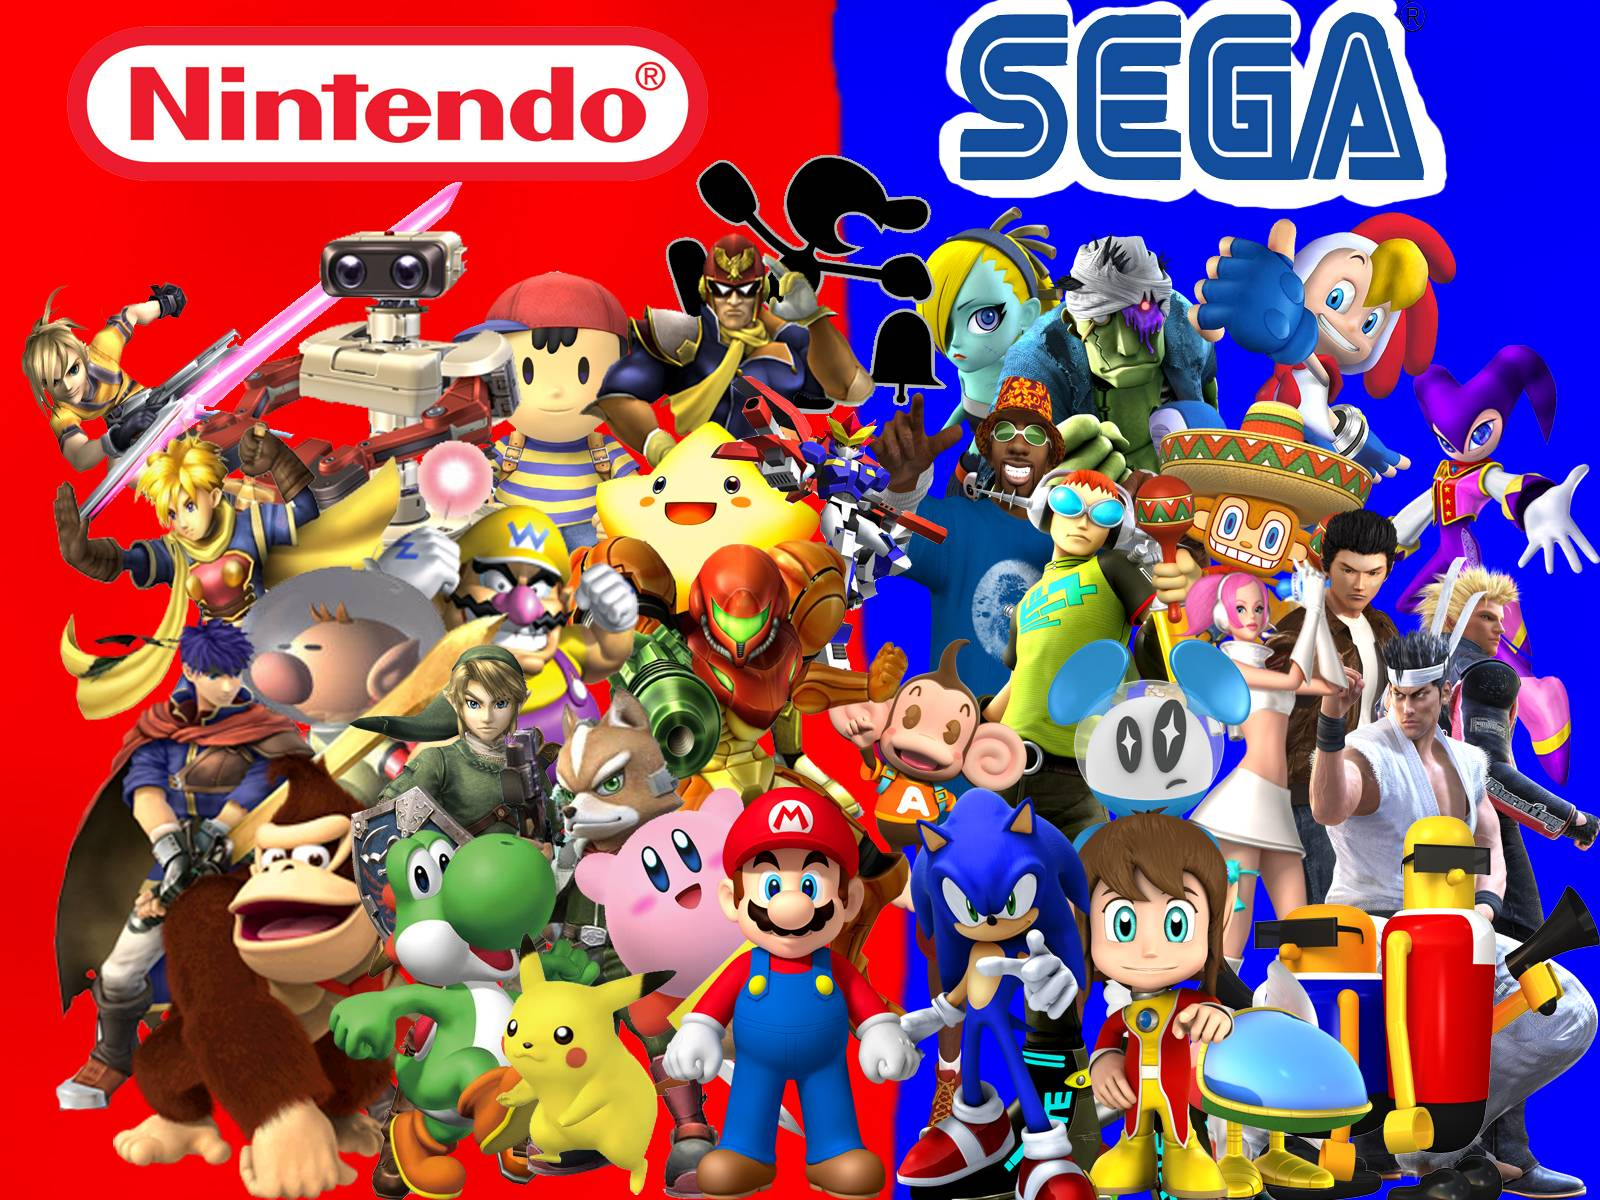 Arcade Game Wallpaper Group With 57 Items: Sega Wallpapers